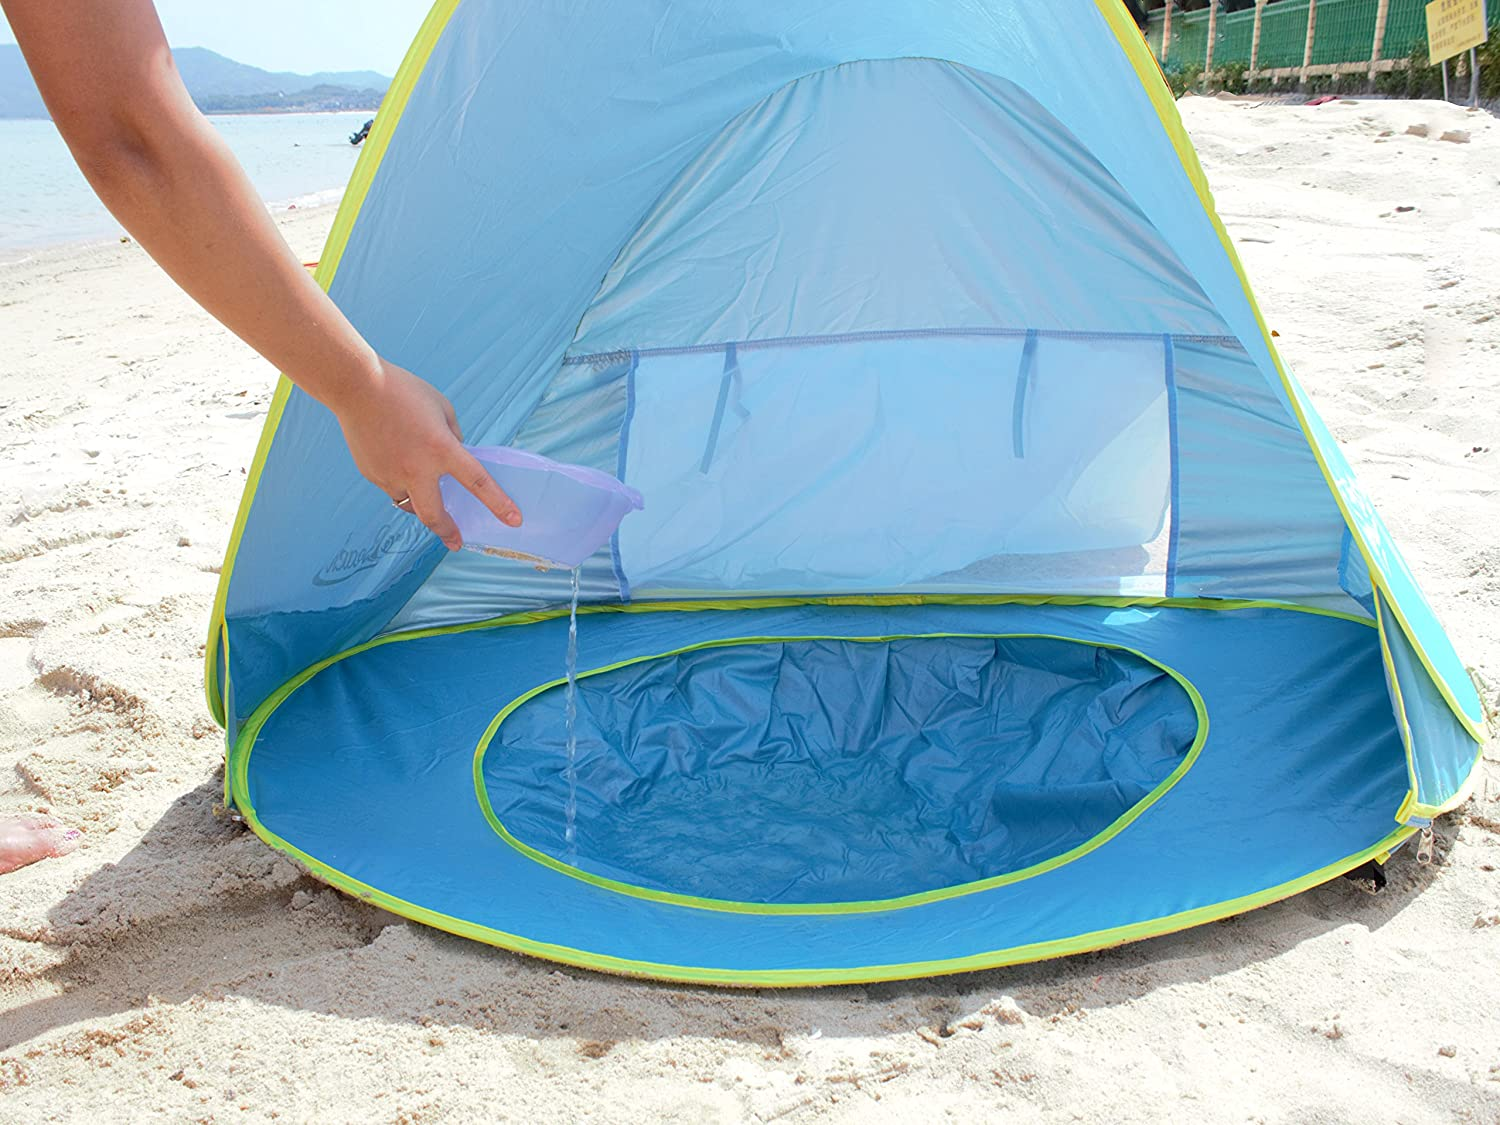 MonoBeach Baby Beach Tent Pop Up Portable Shade Pool UV Protection Sun Shelter For Infant Amazonca Sports Outdoors